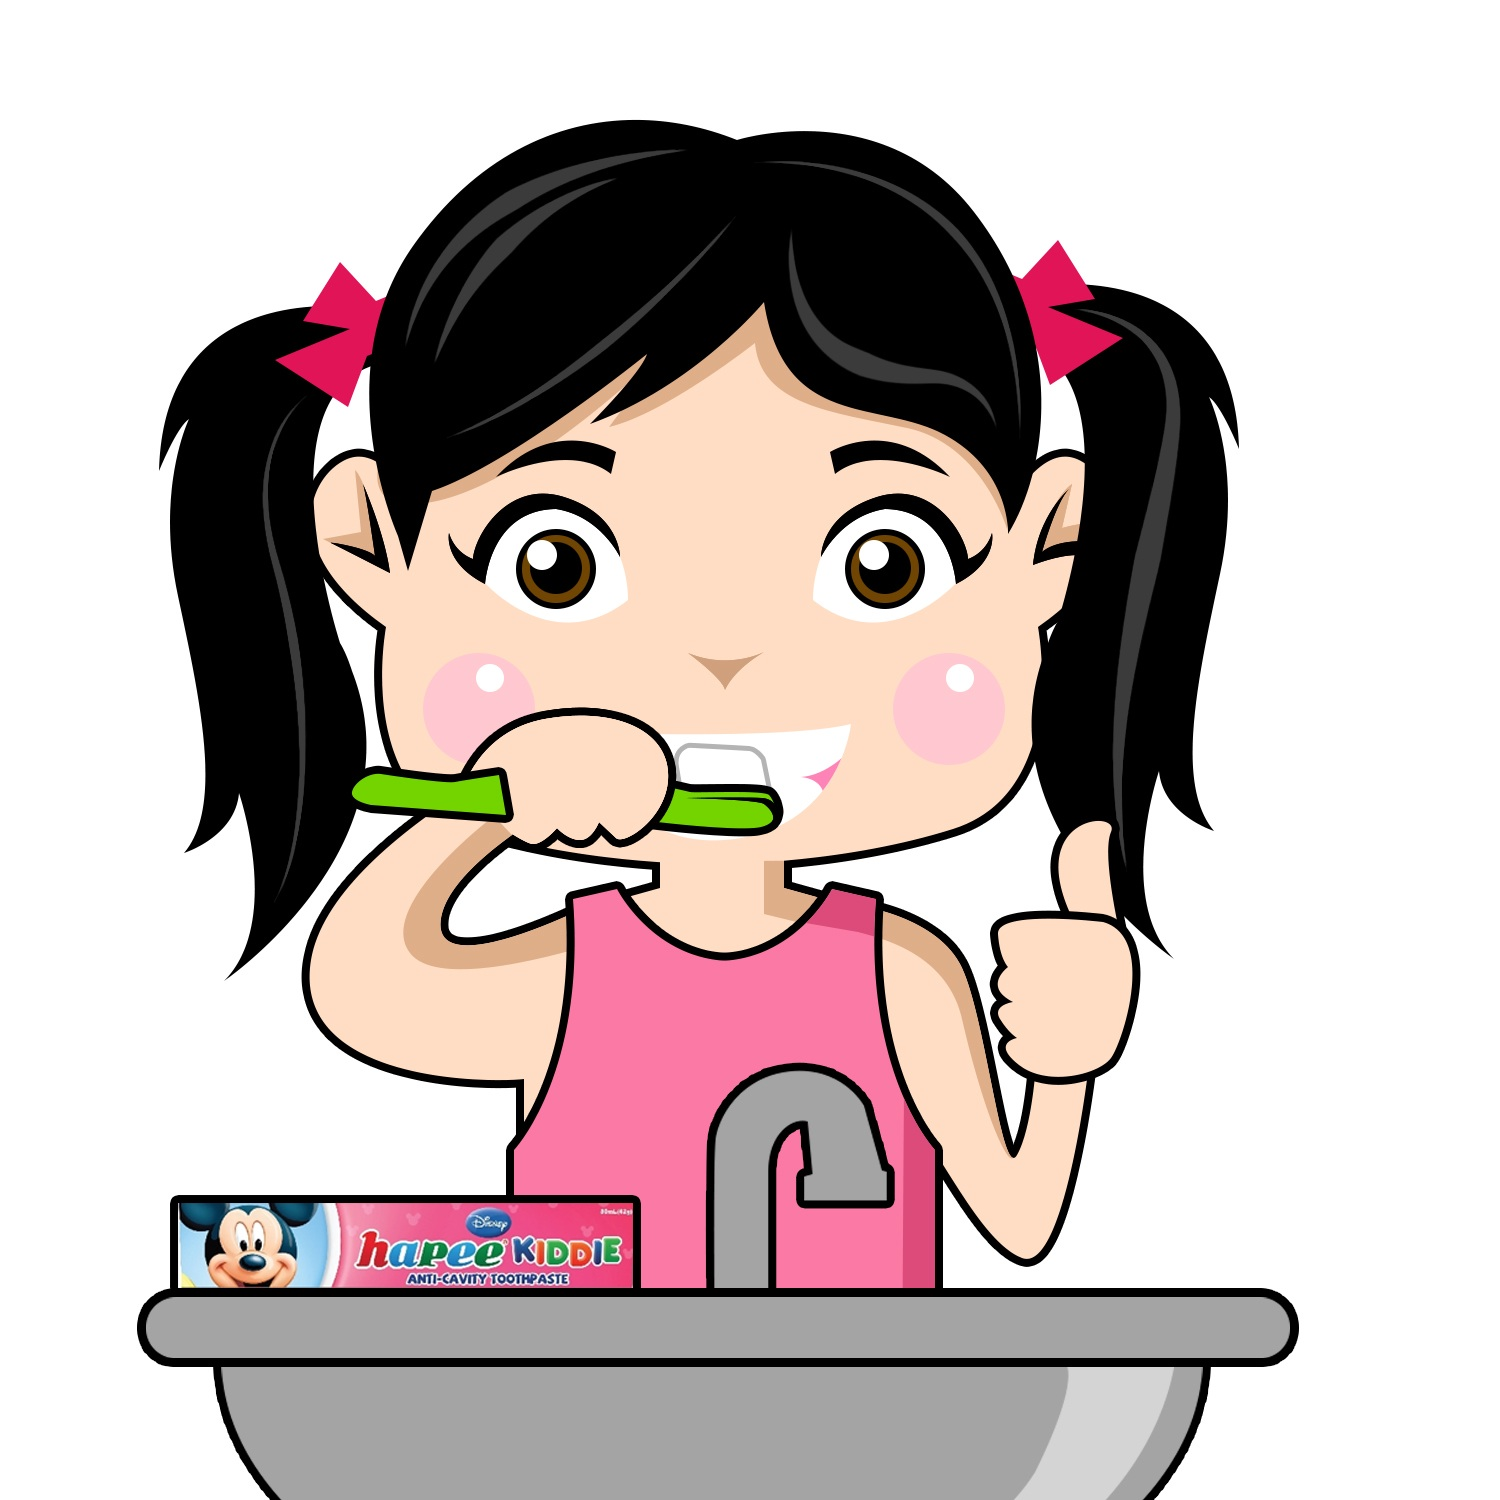 Promoting Good Habits Pictures For Kids